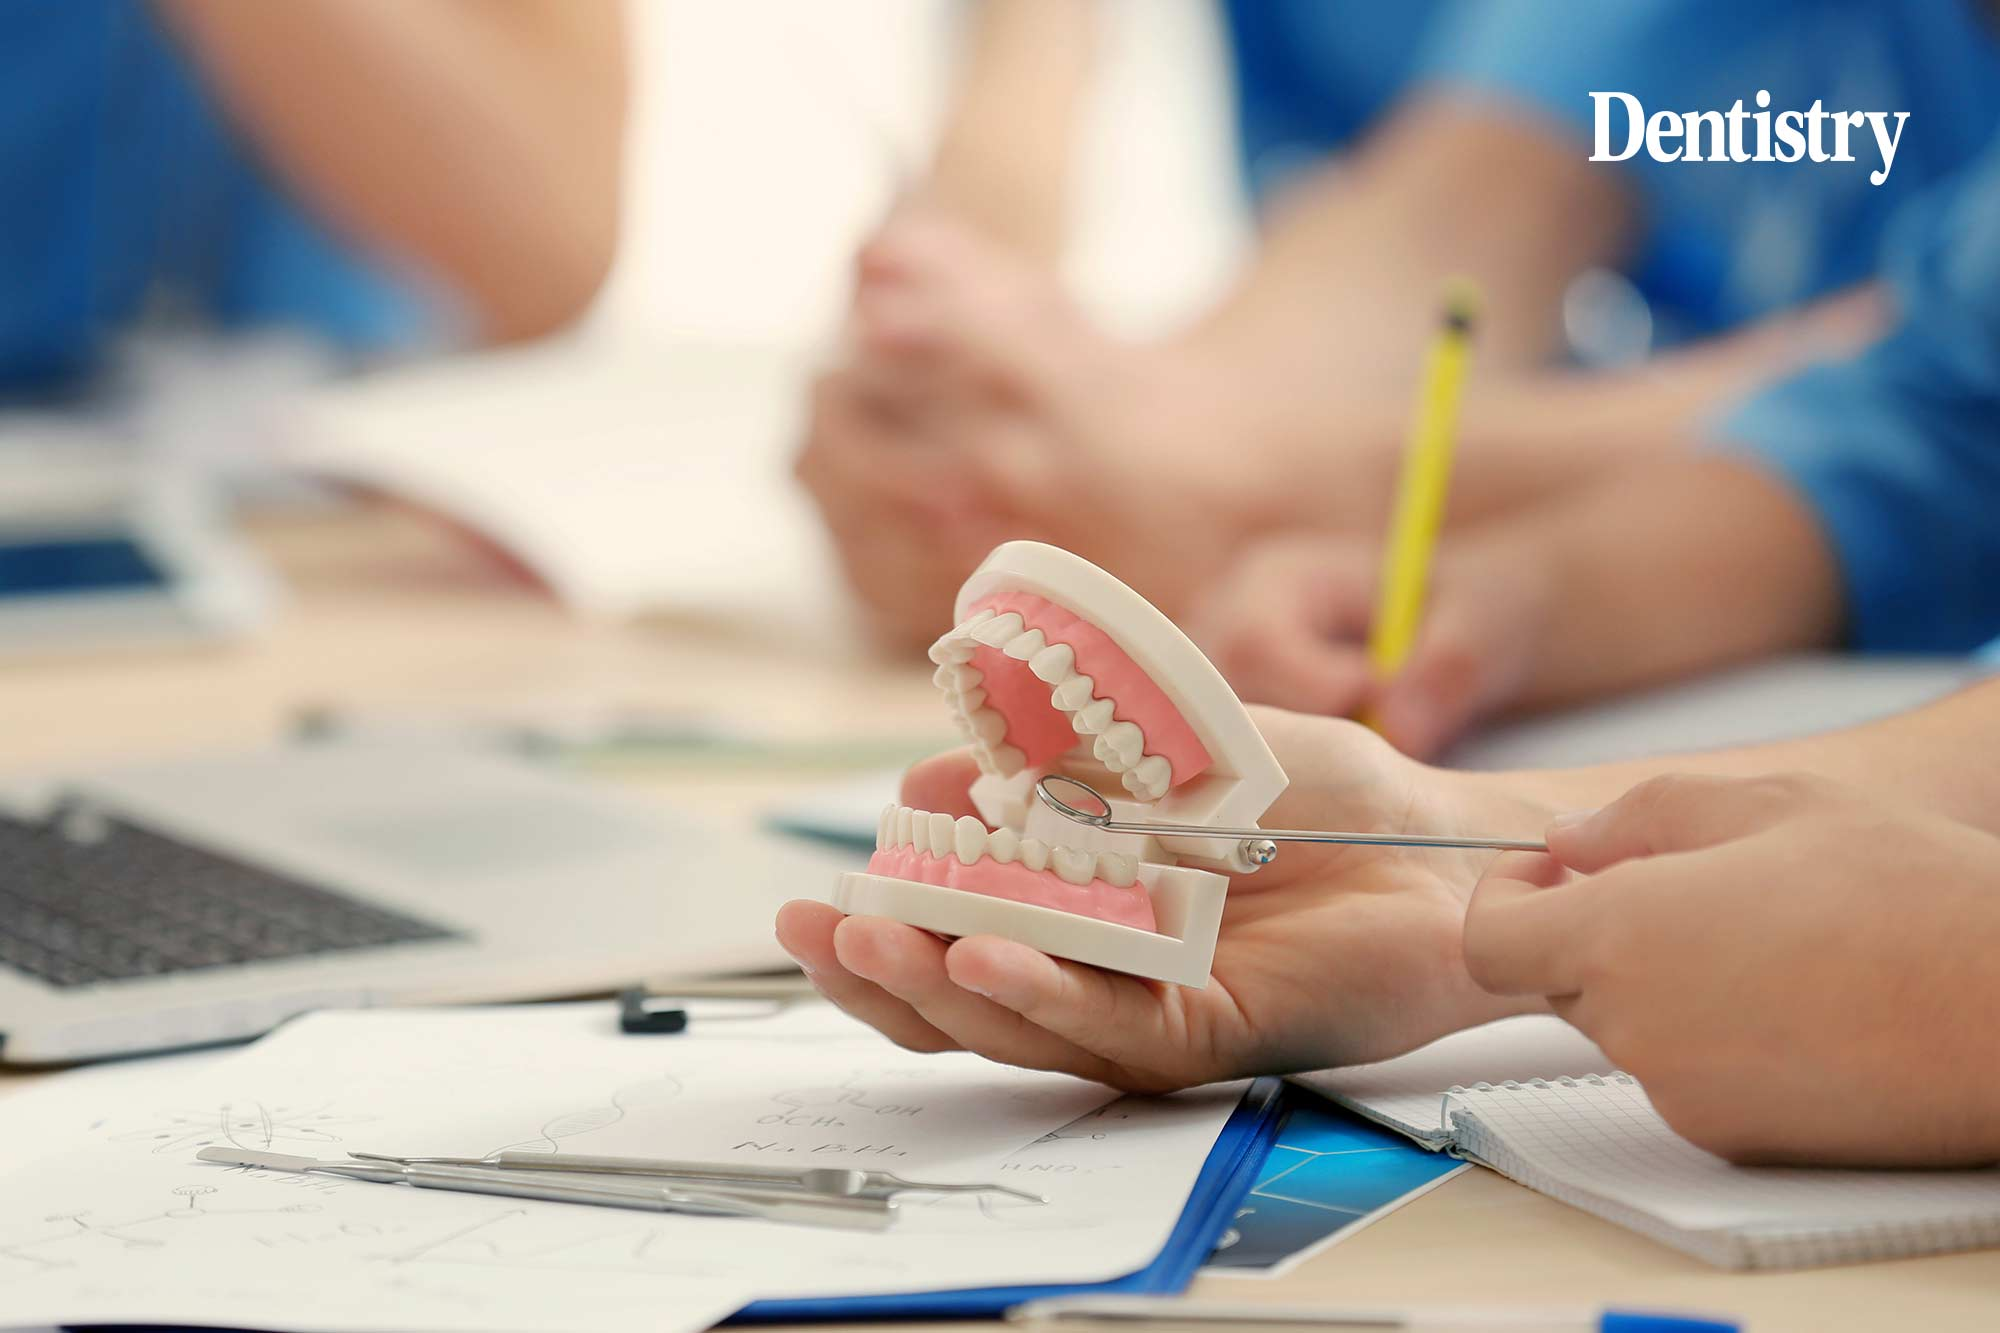 Dental hygiene students have voiced fears of unmanageable debt after they were denied bursaries